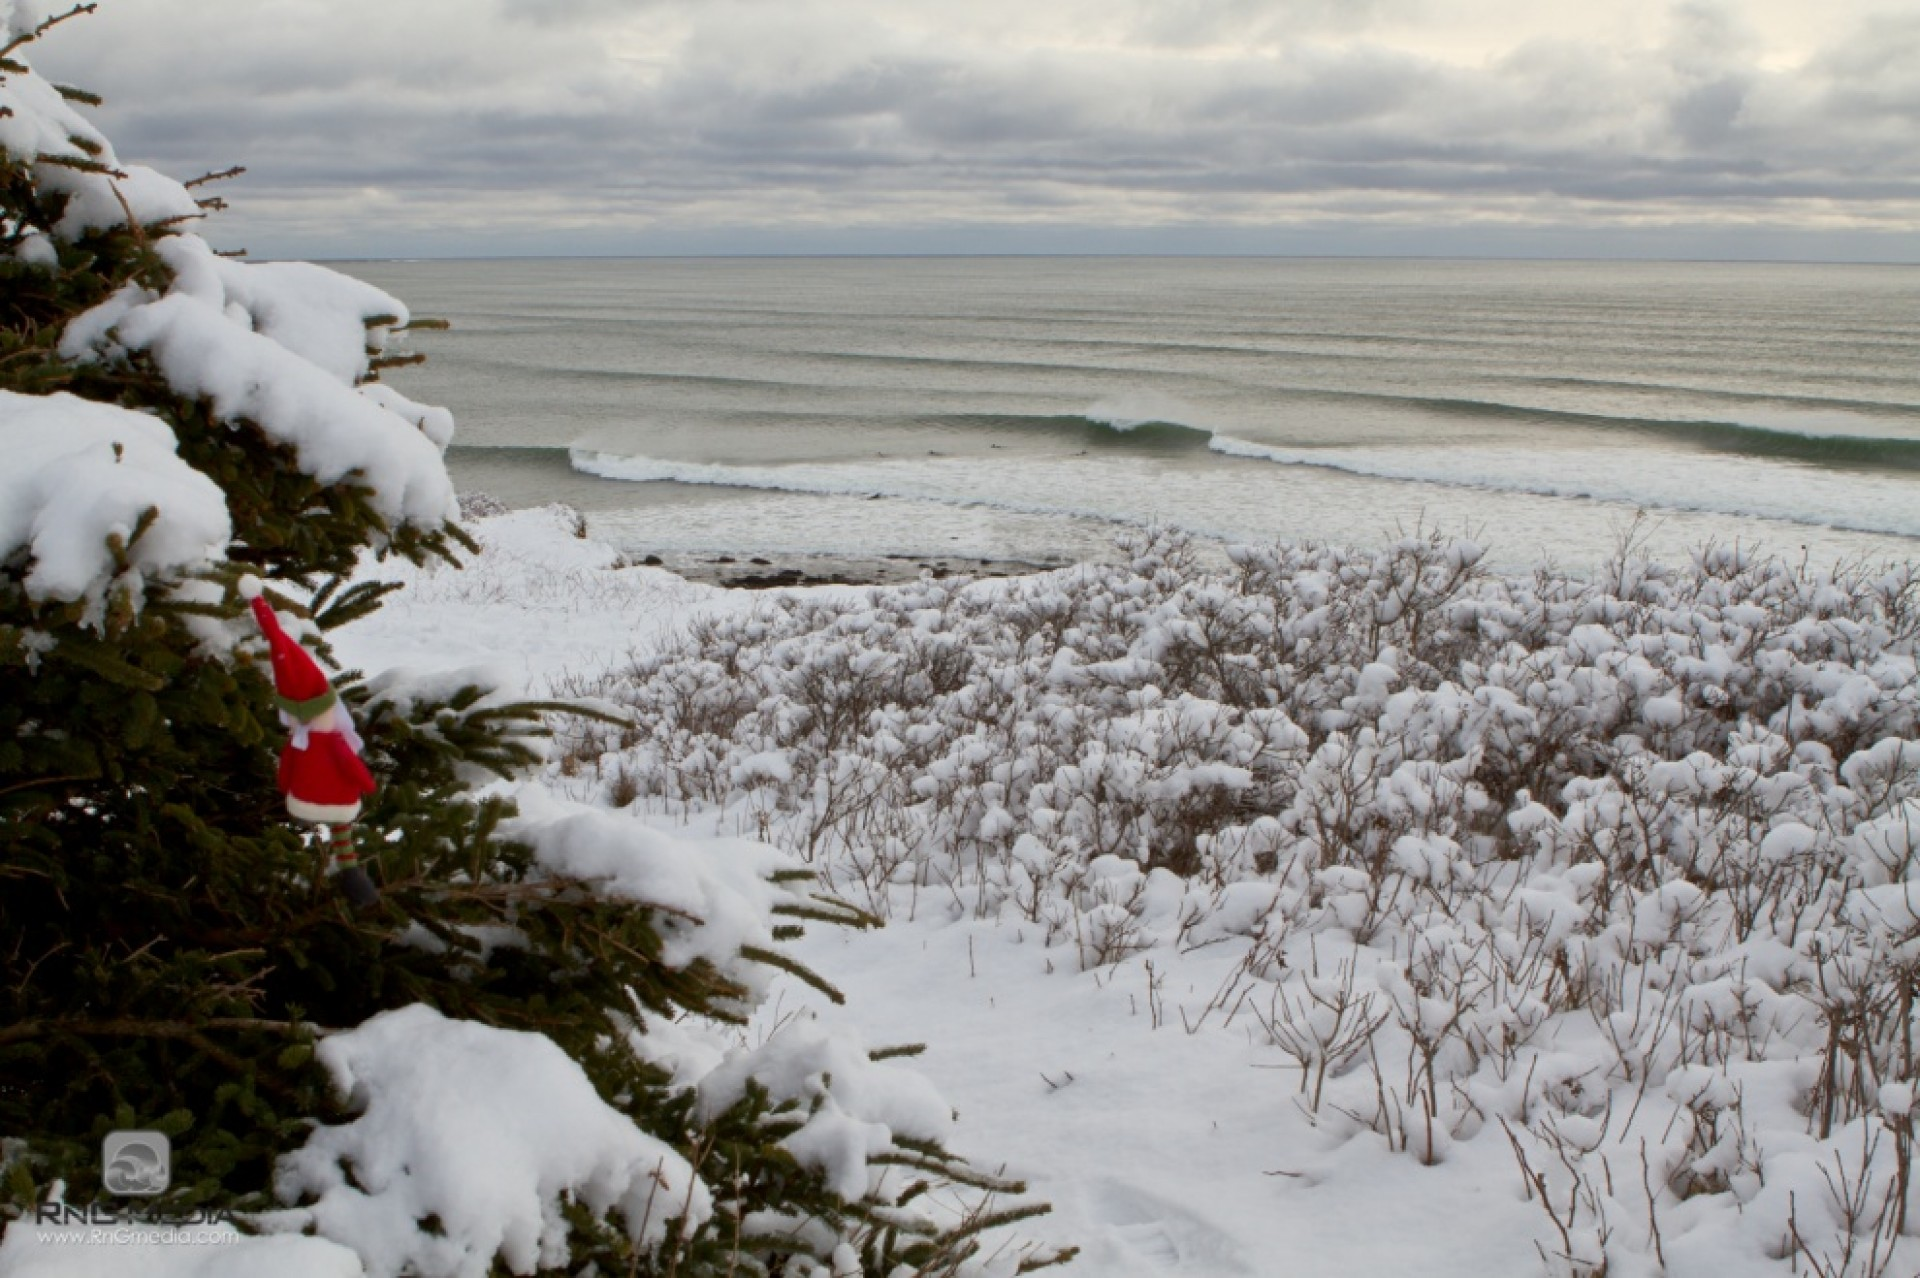 RnGmedia's photo of Lawrencetown